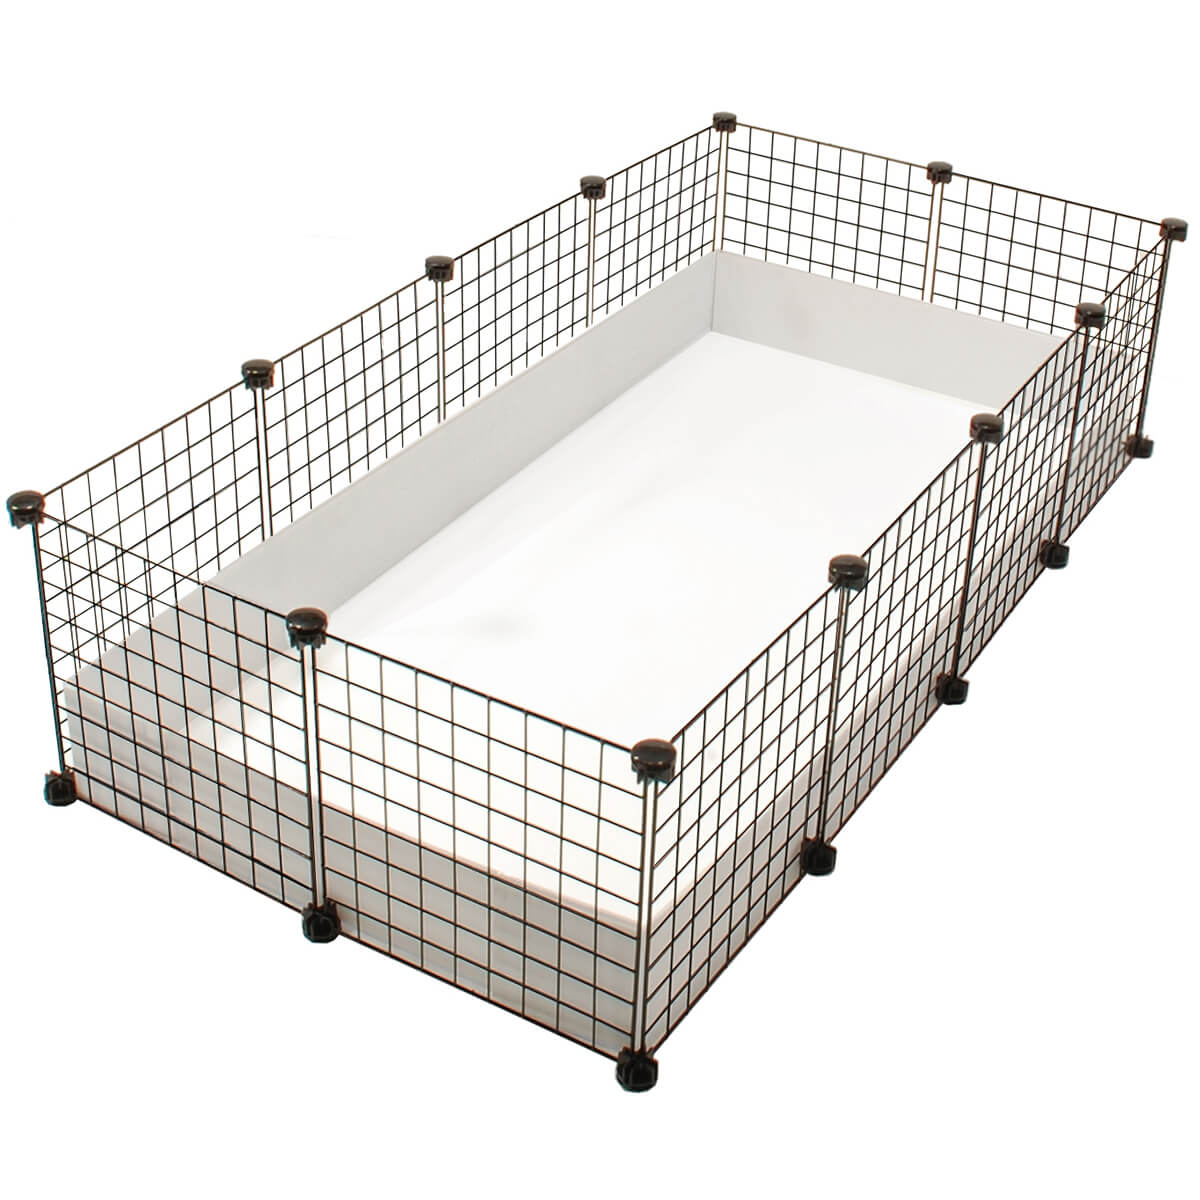 Large 2x4 grids cage standard cages c c cages for for Buy guinea pig cage